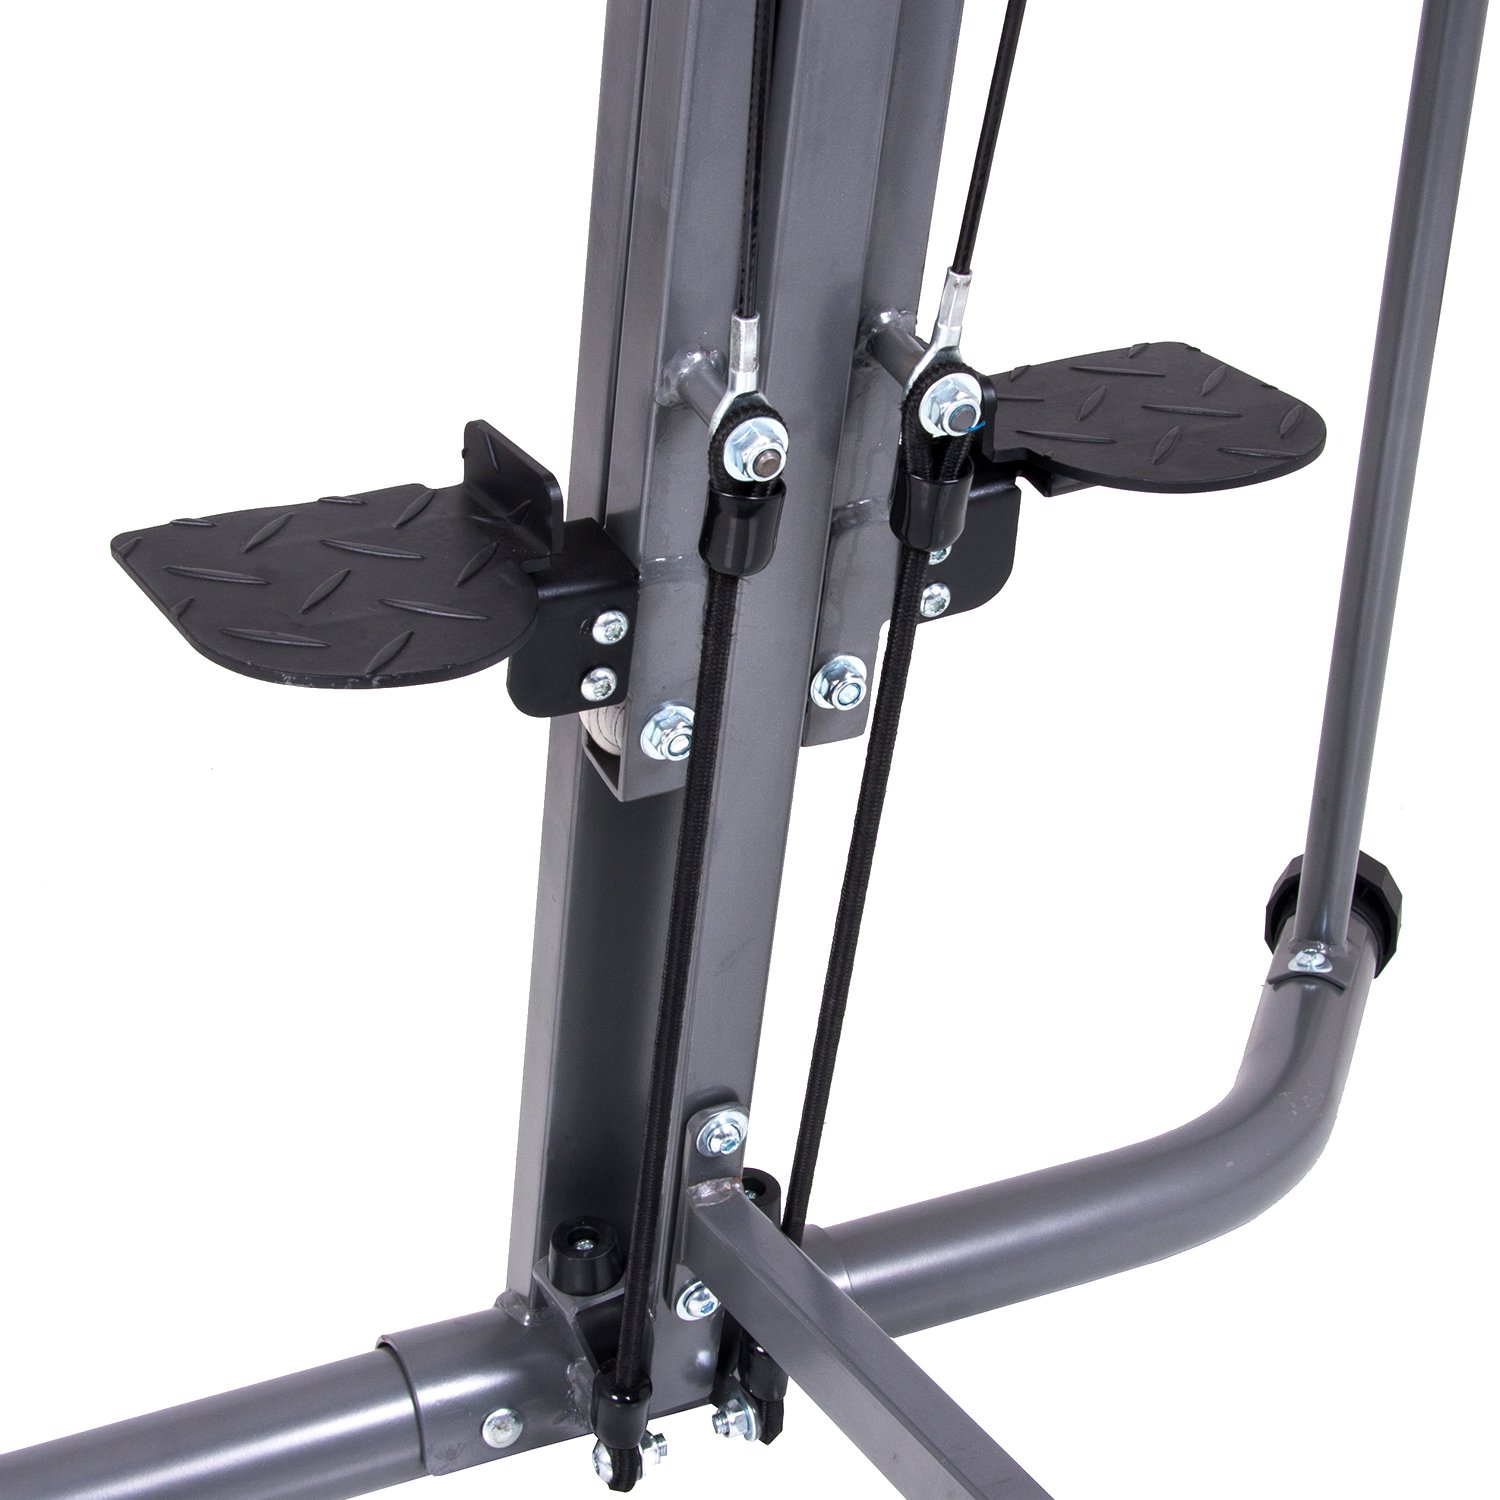 Body Champ Leisa Hart Cardio Vertical Stepper Climber / Includes Assembly Video, Meal Plan Guide, Workout Video access BCR890 by Body Champ (Image #10)